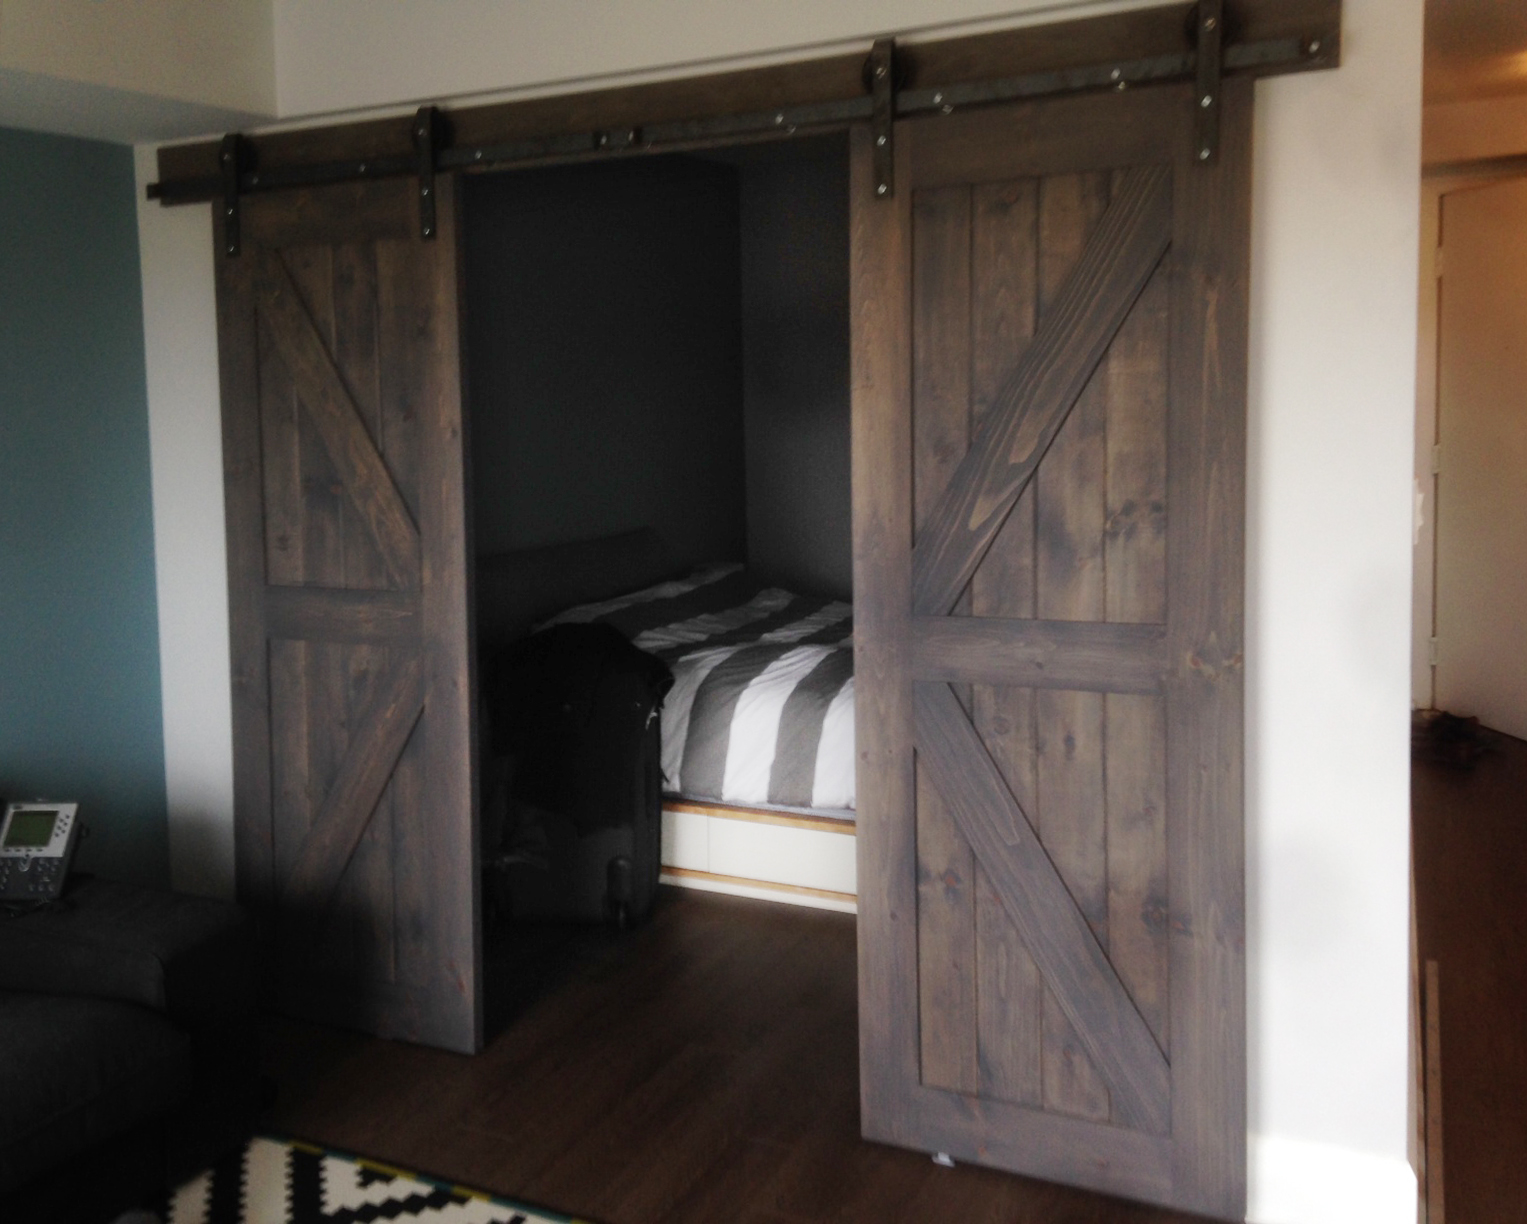 Our clients have really nice sense of style with striped sheet pattern which goes so well with these panel barn doors.